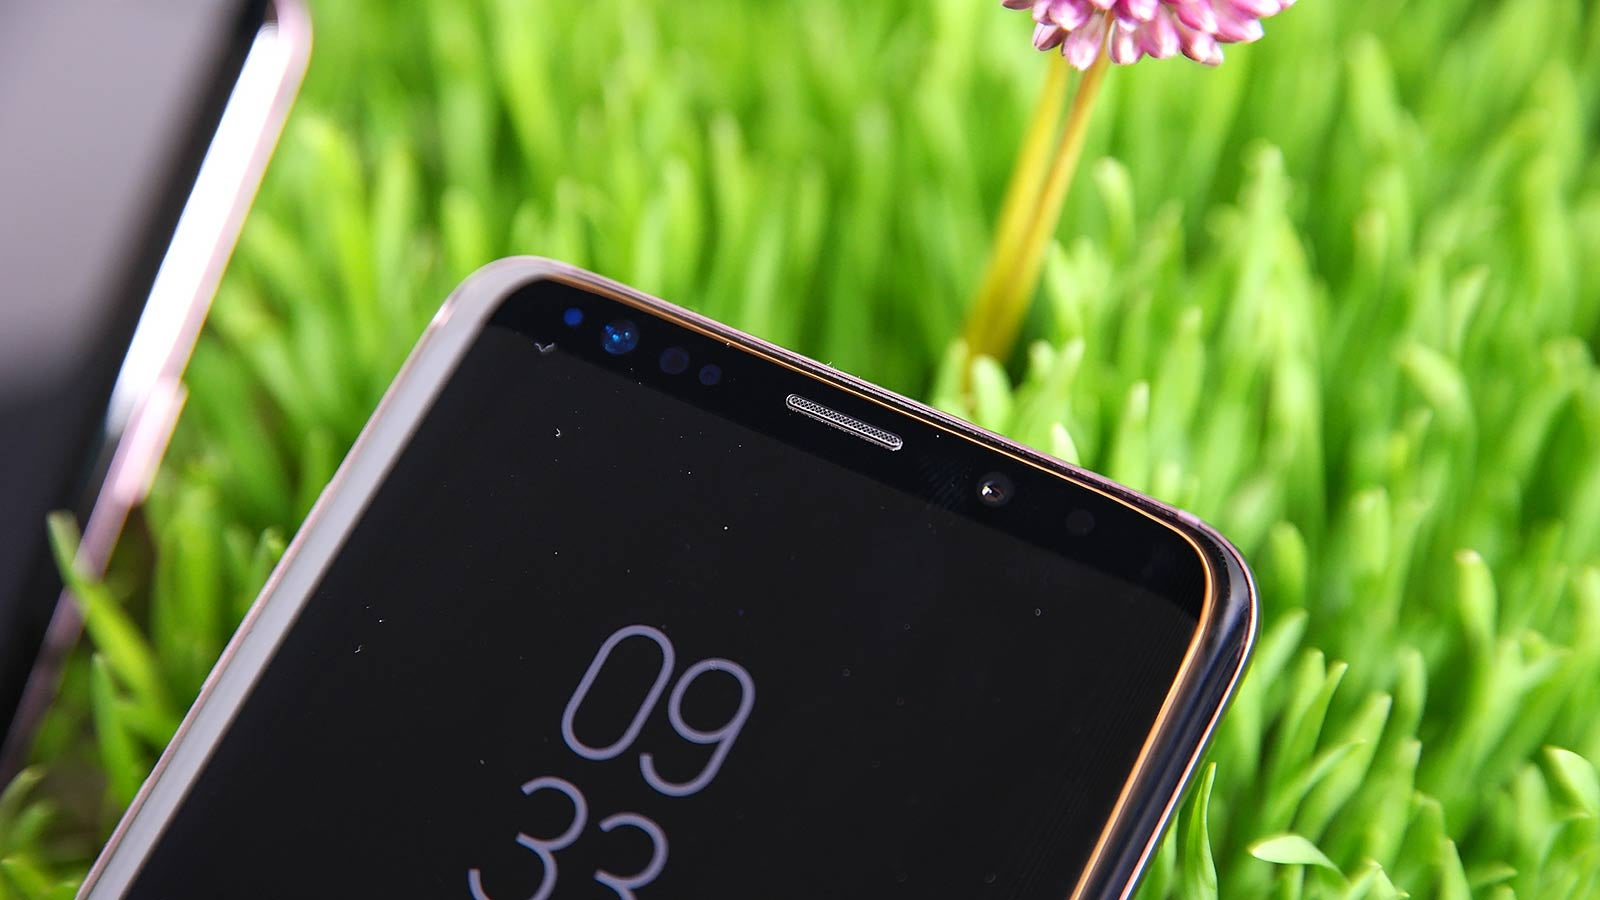 Samsung Galaxy S10 Officially Confirmed